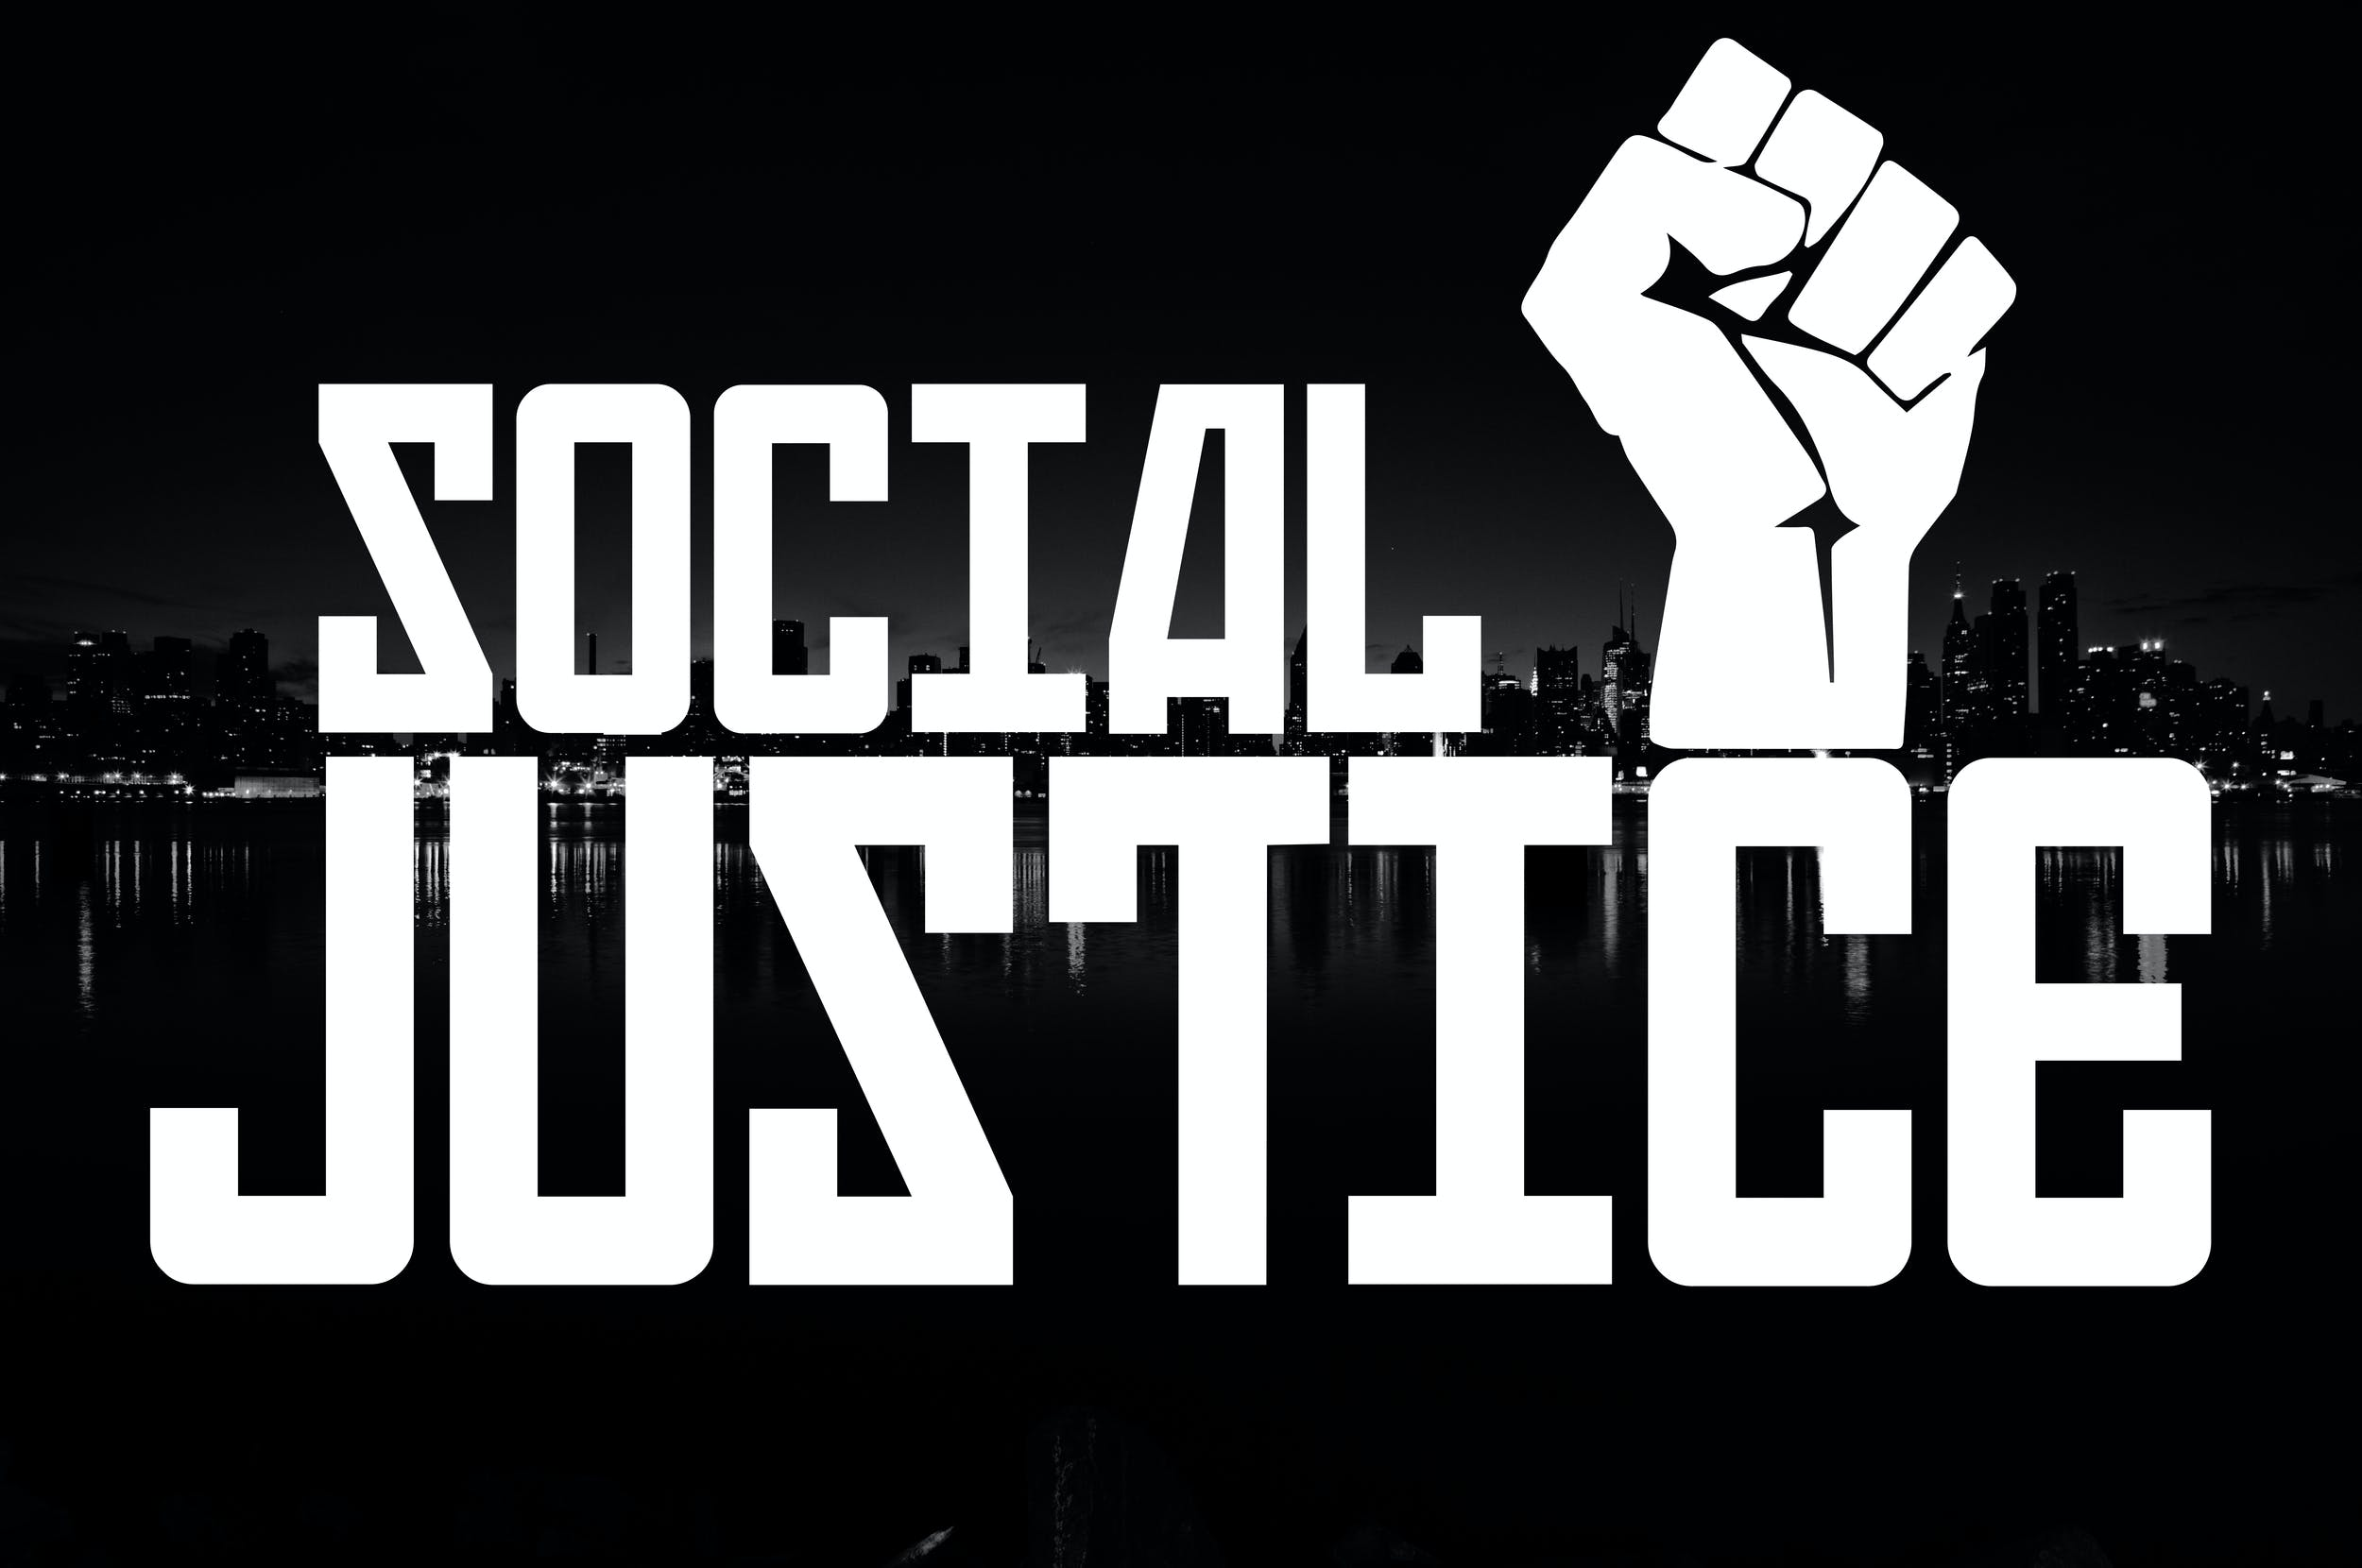 PDHPE: Get your head around the principles of social justice